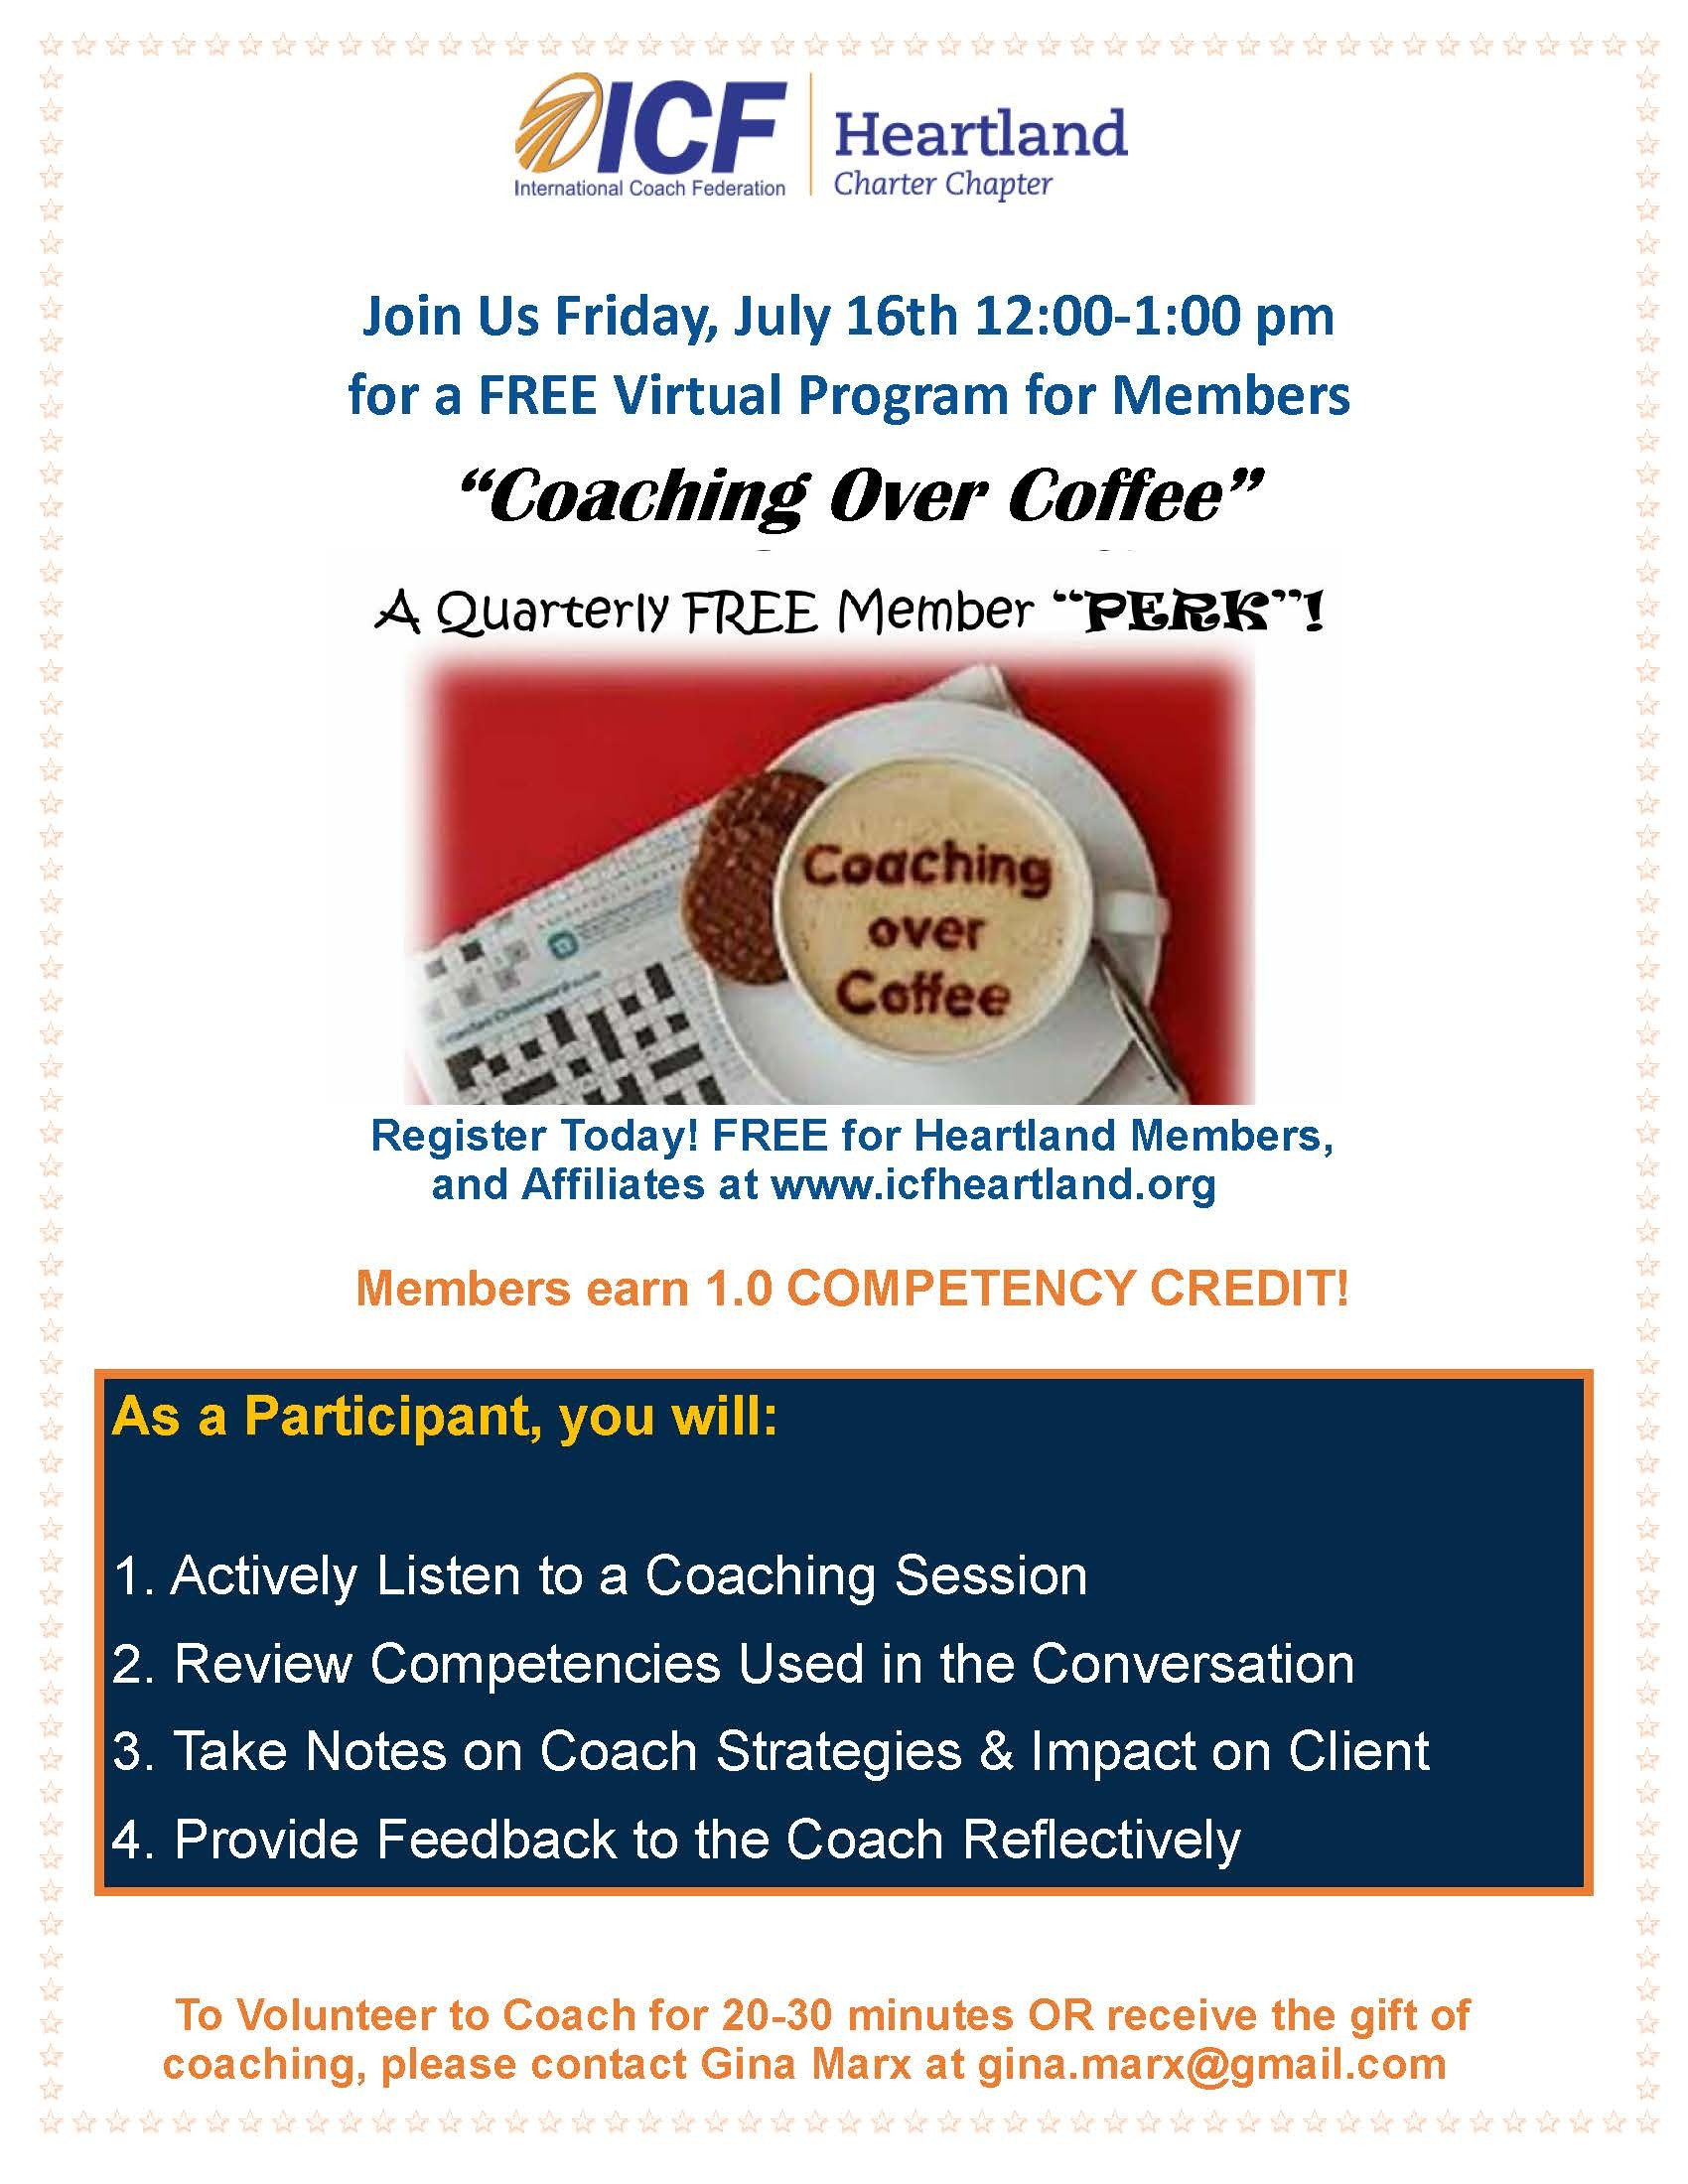 Jul 16 Coaching Over Coffee